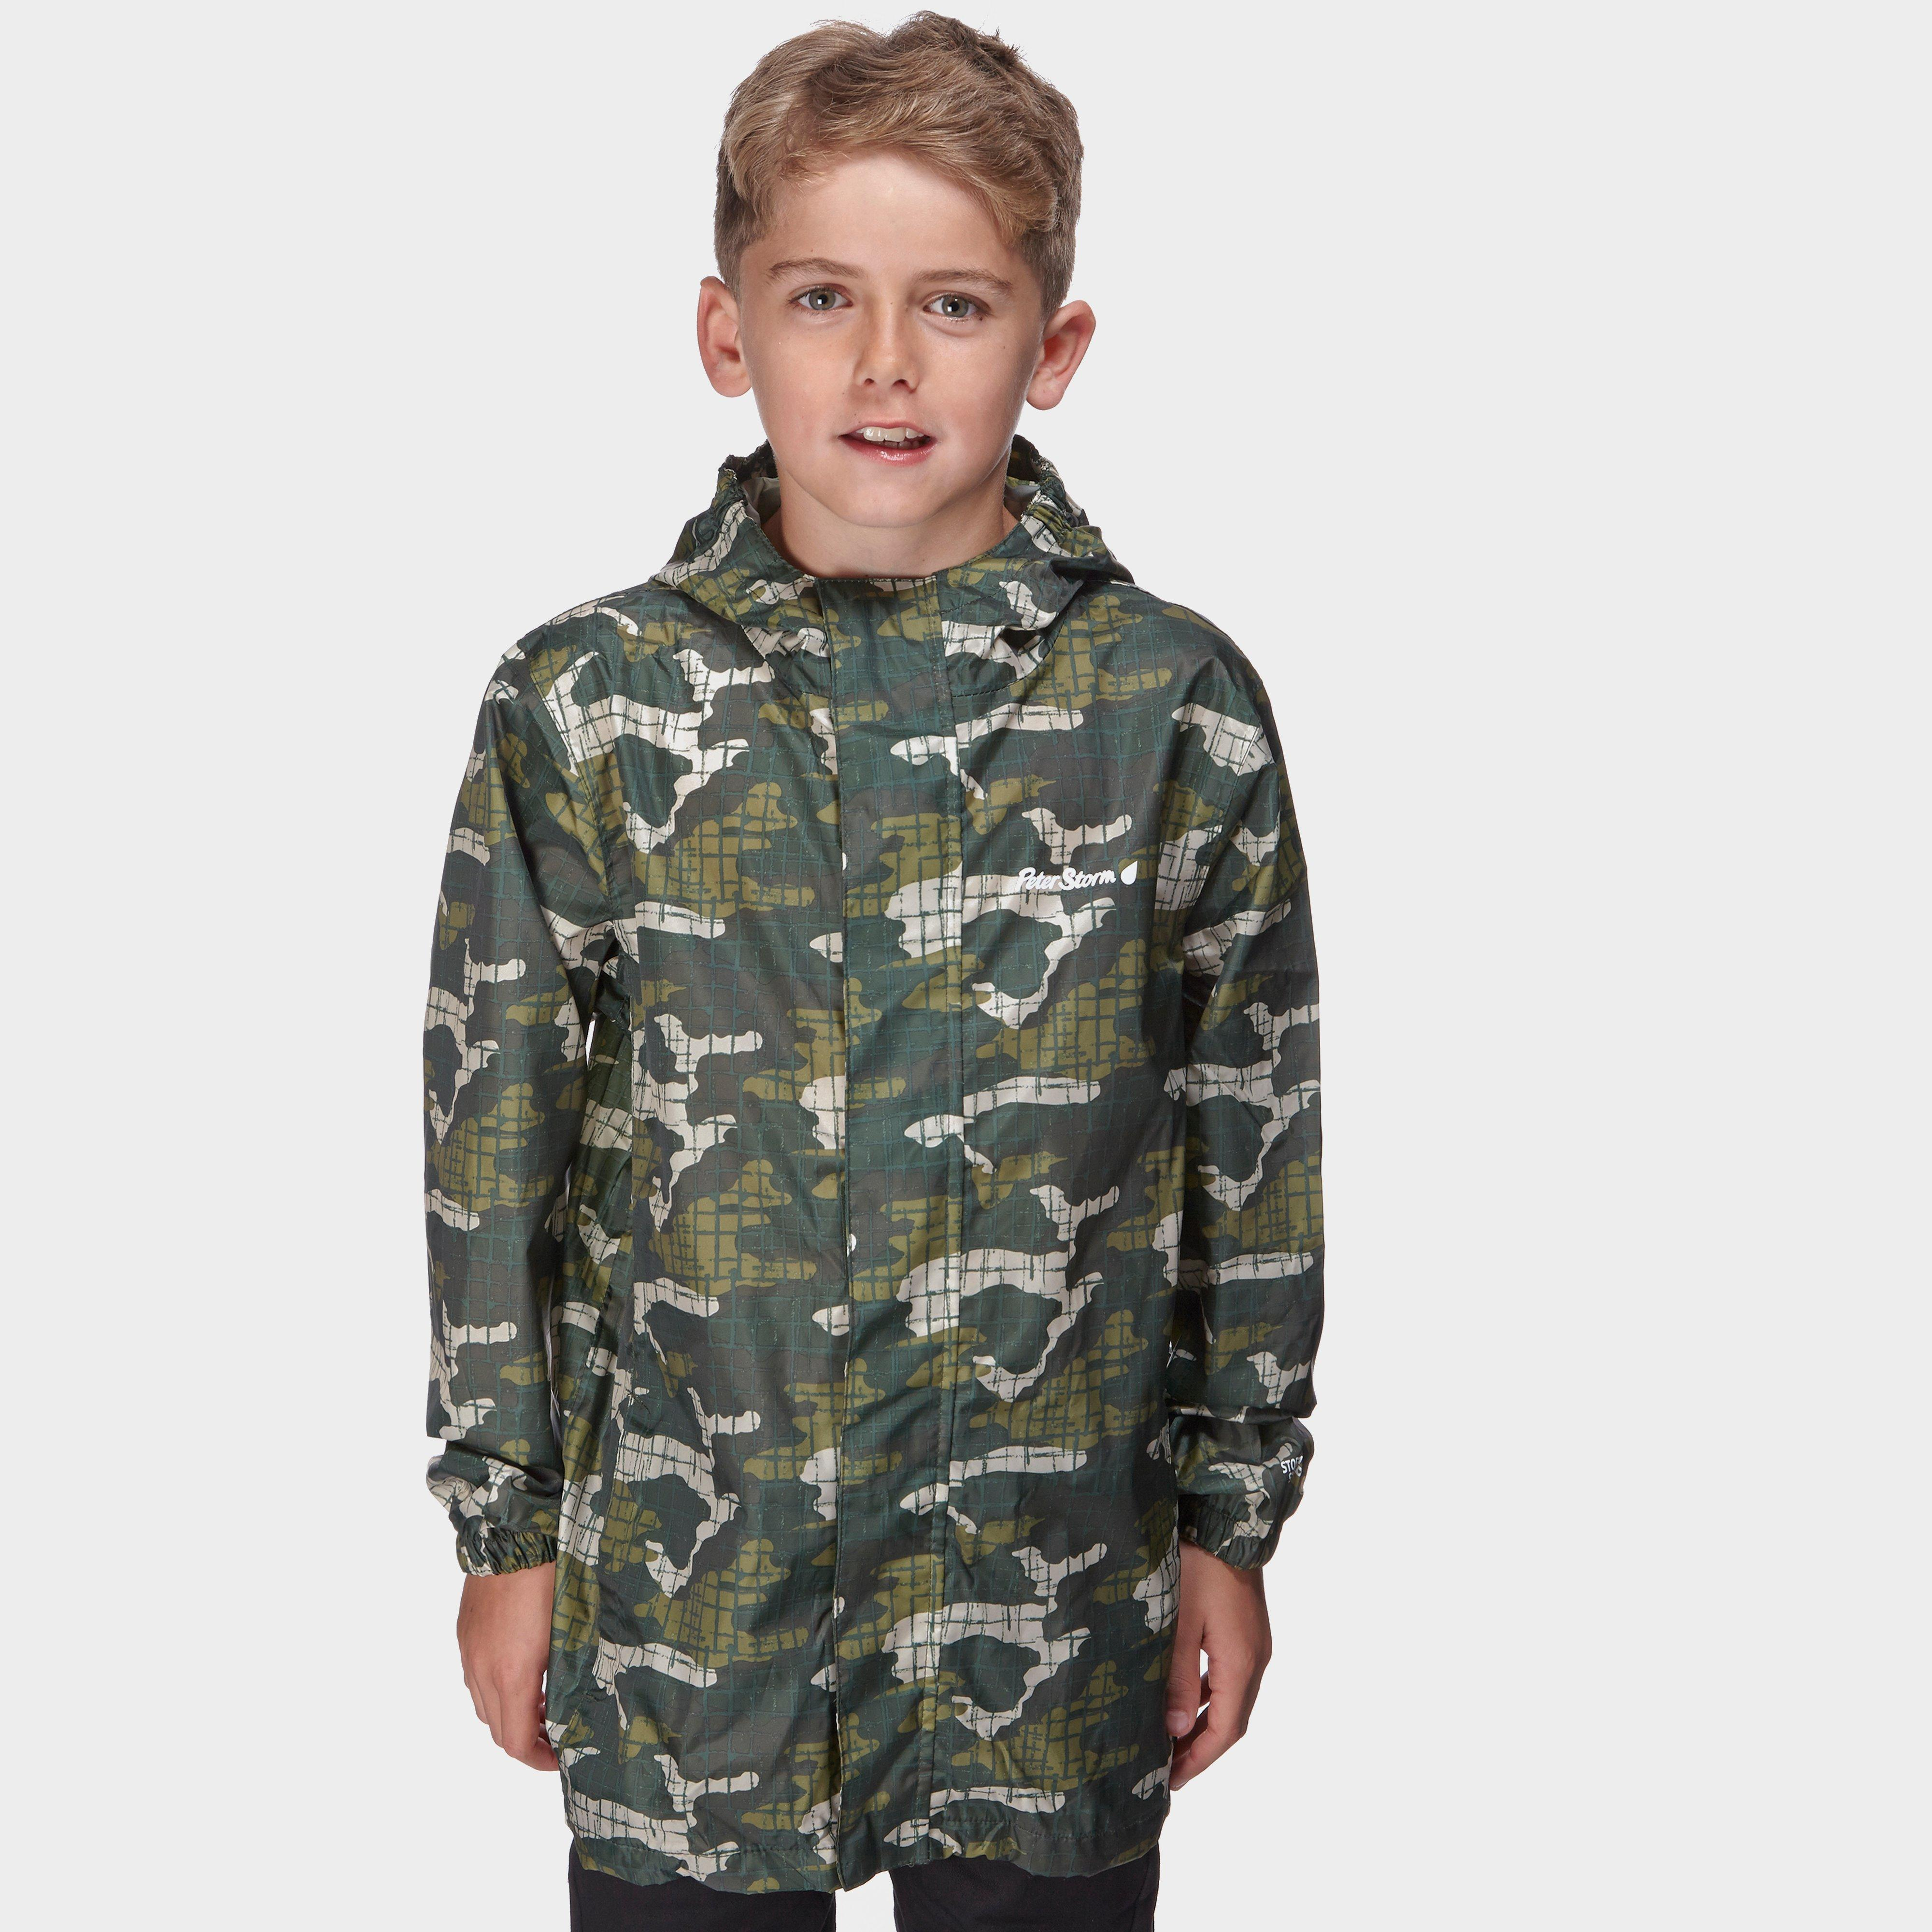 Boys' Toys Girls' Toys Musical Instruments. Camo Jackets. Showing 48 of results that match your query. Search Product Result. Product - All Purpose Camo Jacket. Product - San Francisco 49ers NFL G-III